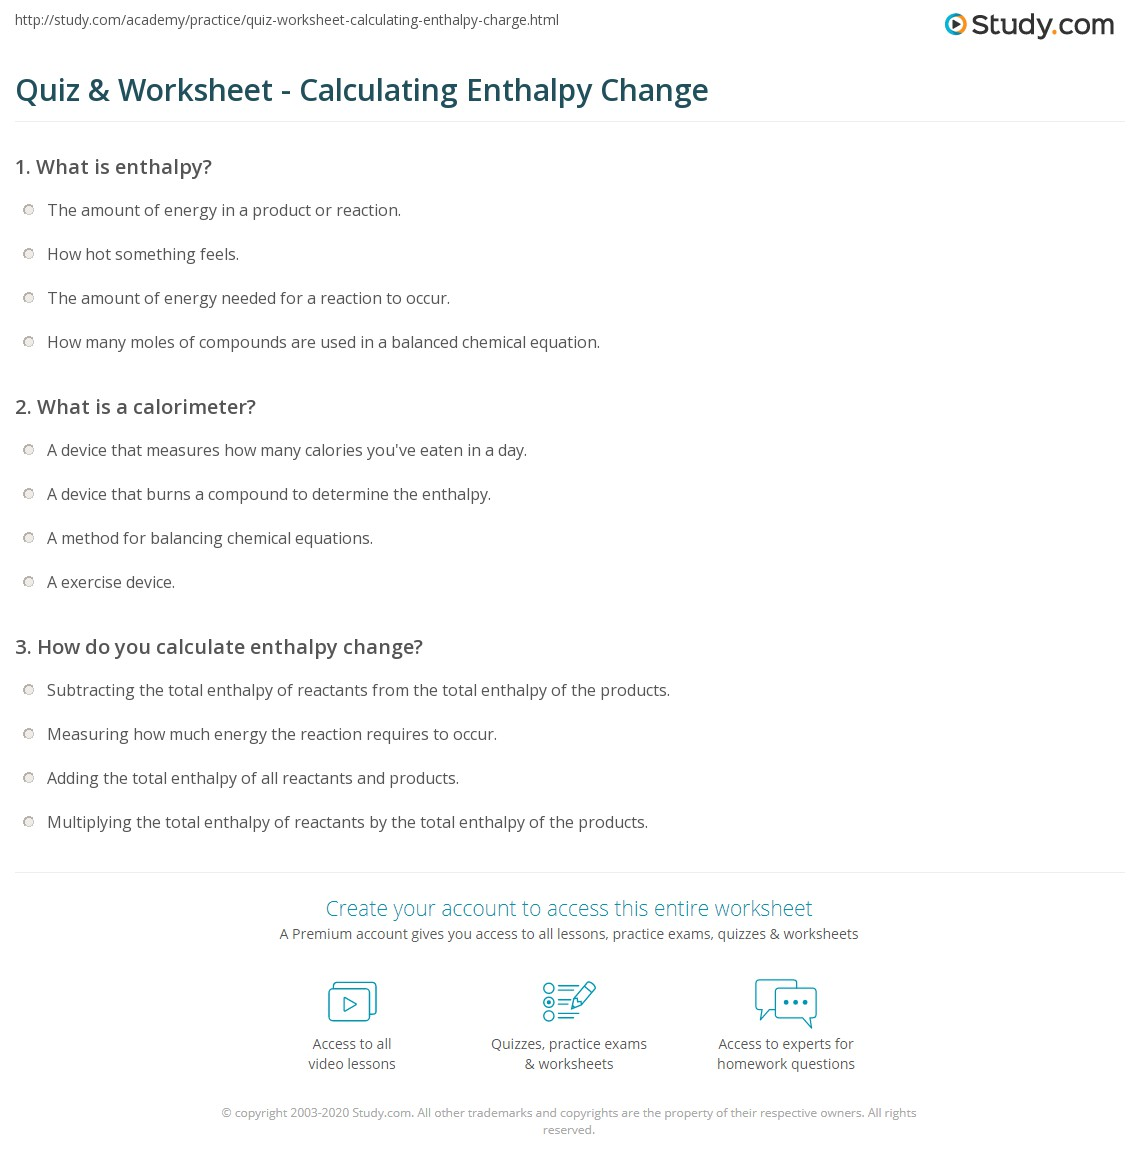 Quiz Worksheet Calculating Enthalpy Change Study